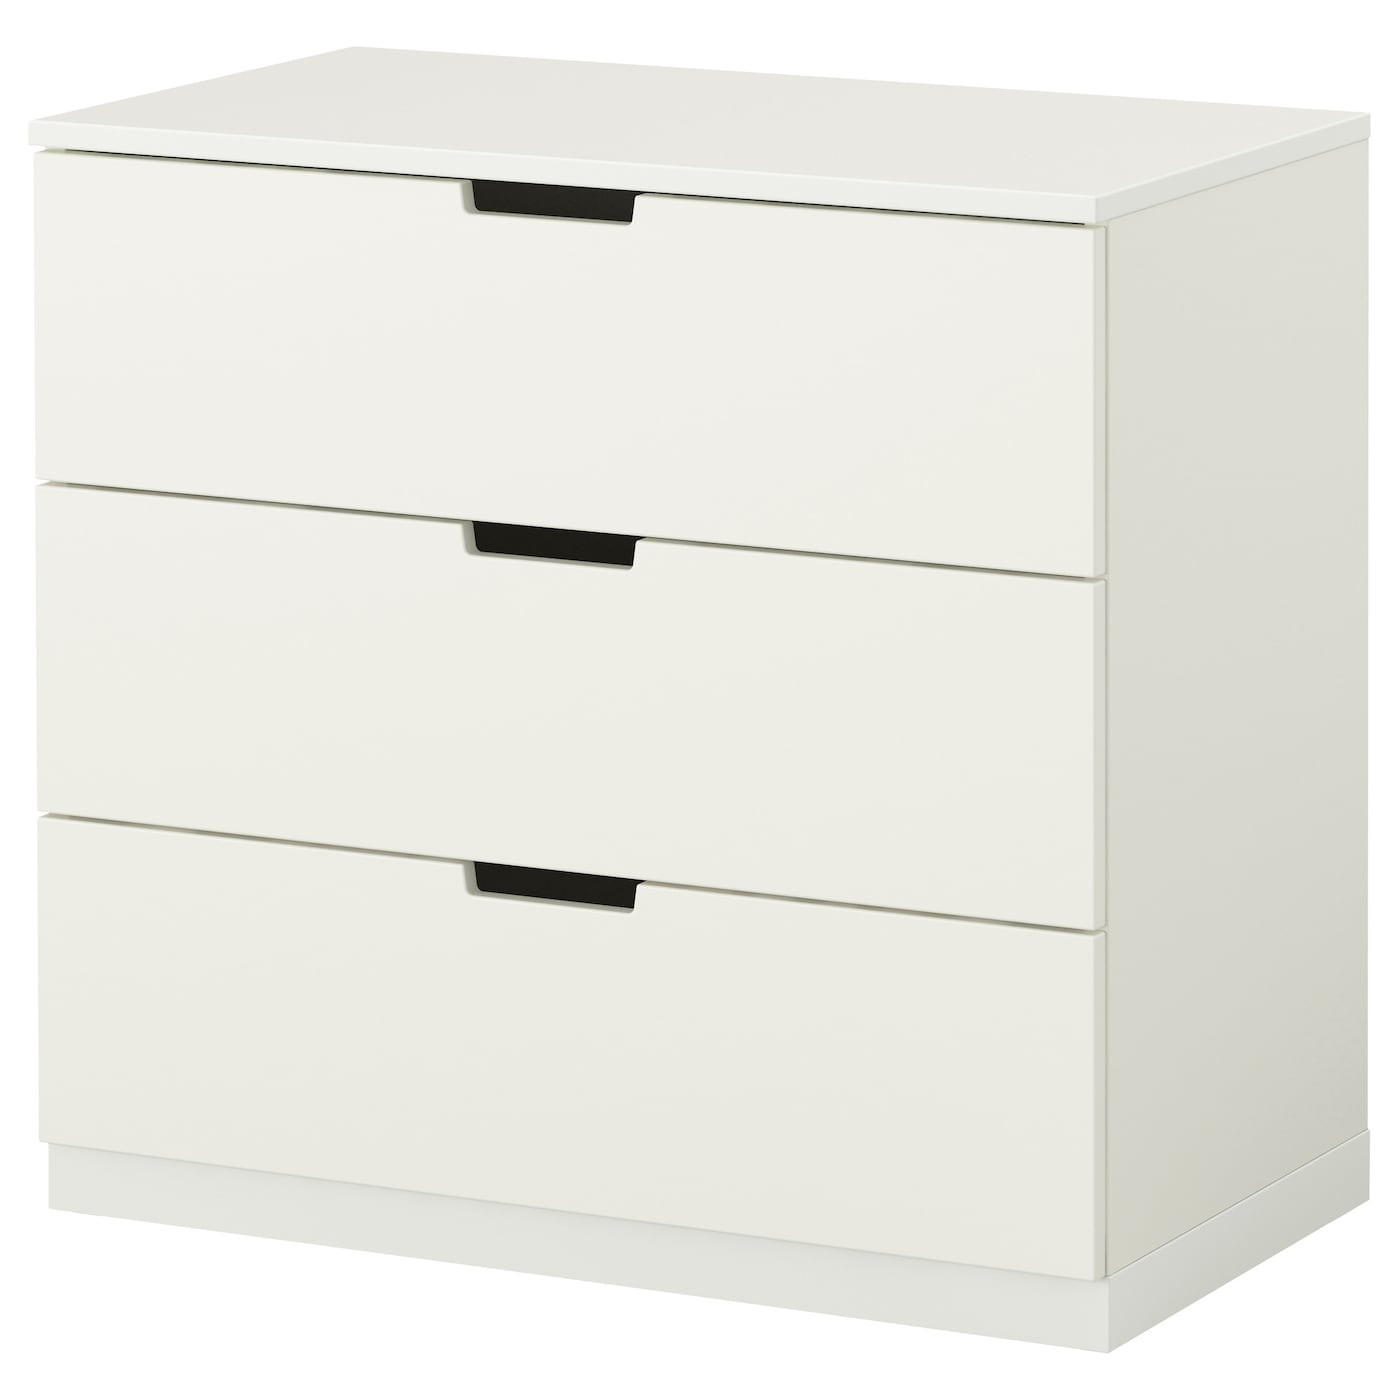 Nordli chest of 3 drawers white 80x75 cm ikea for Kommode 100 x 60